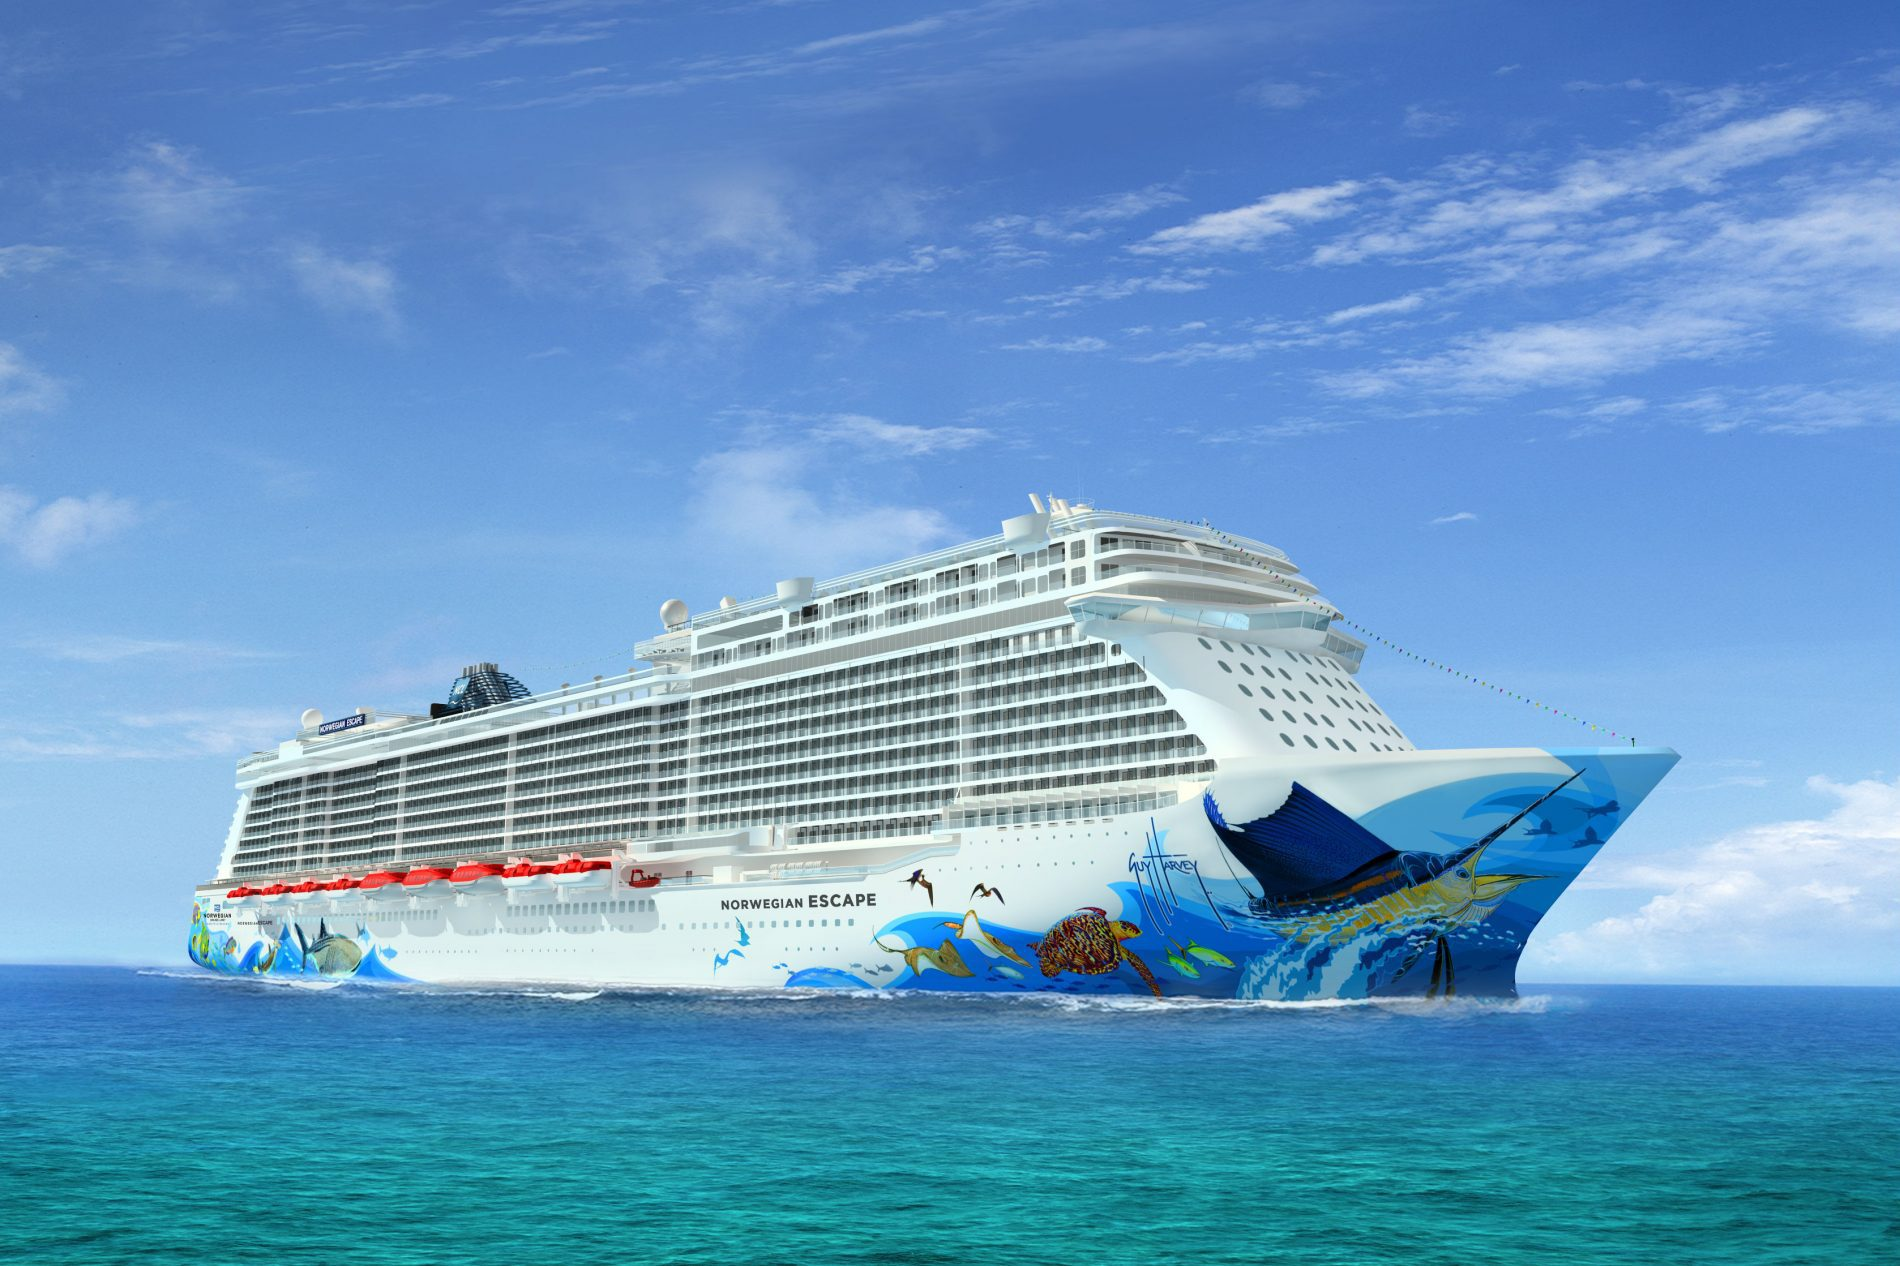 Norwegian cruise line to buy prestige for 3bn for High end cruise lines